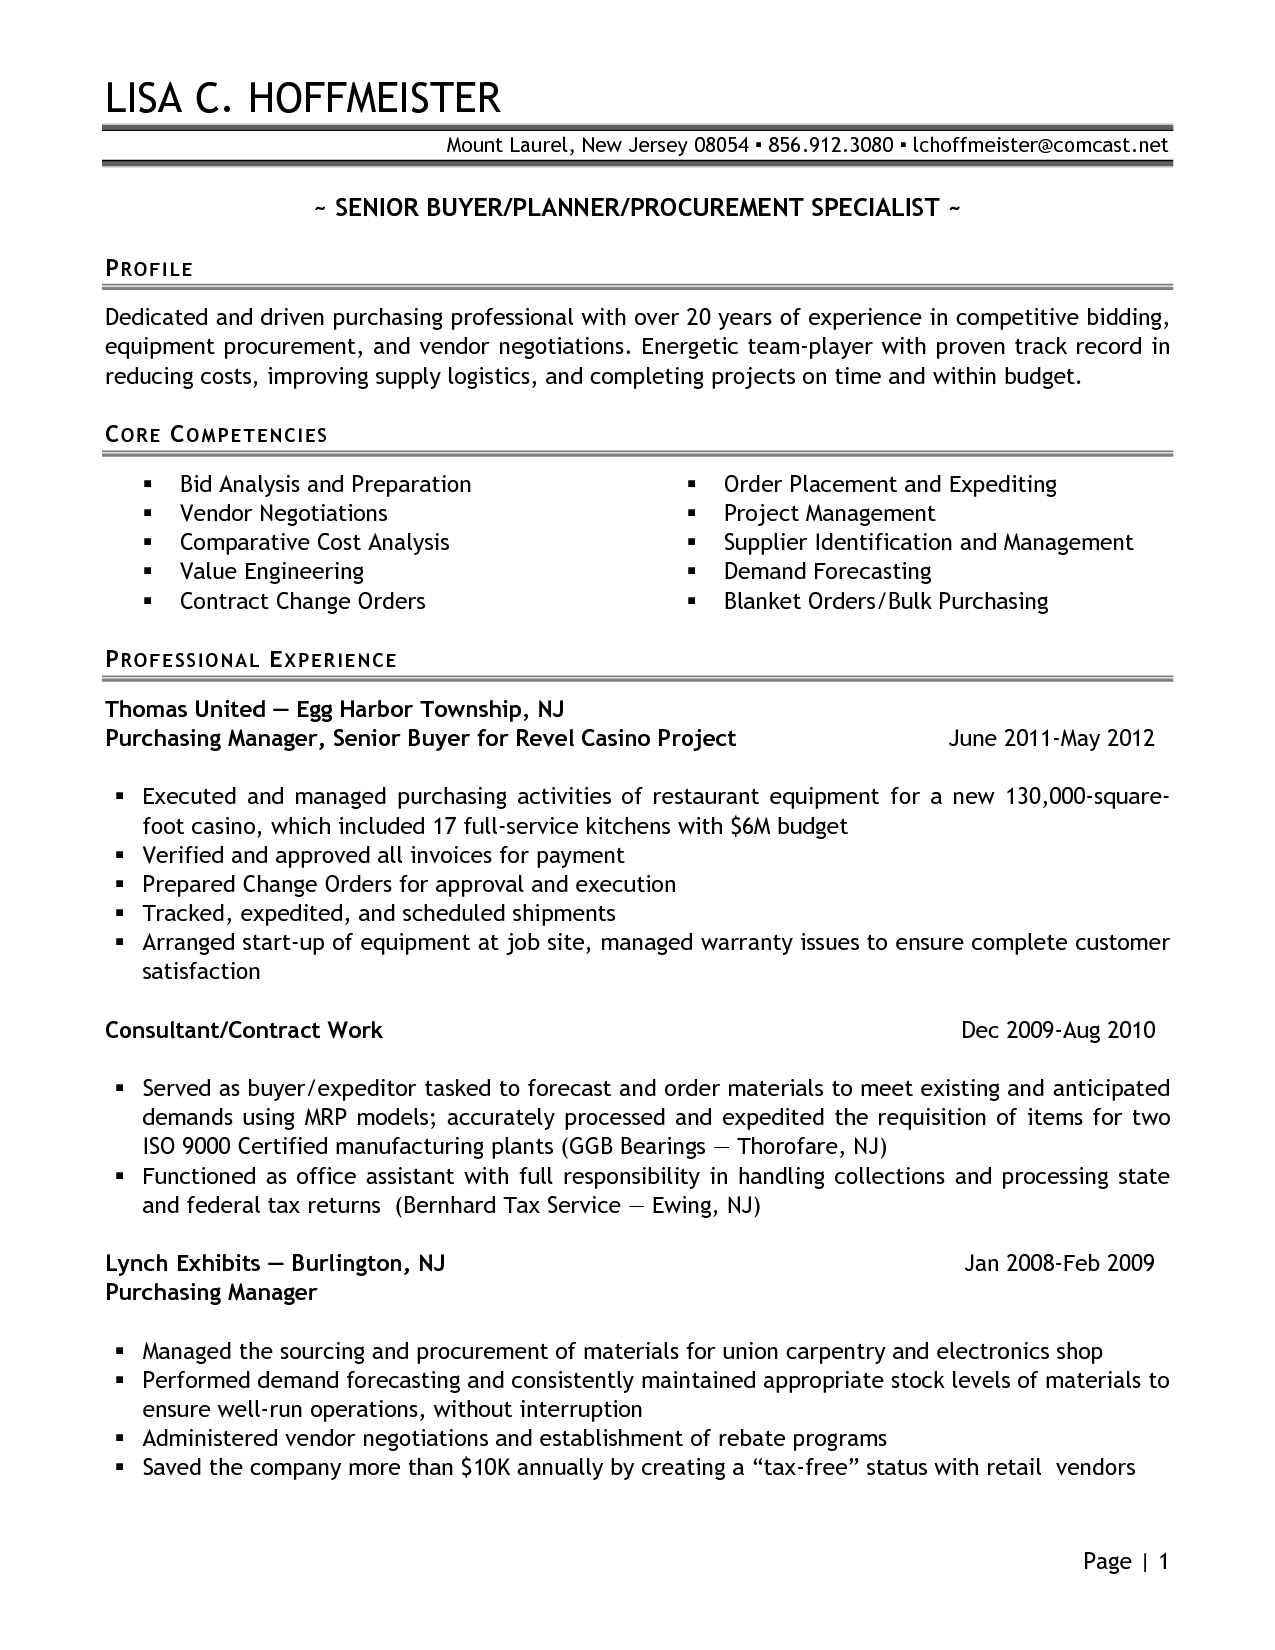 senior logistic management resume | Senior Buyer Purchasing ...